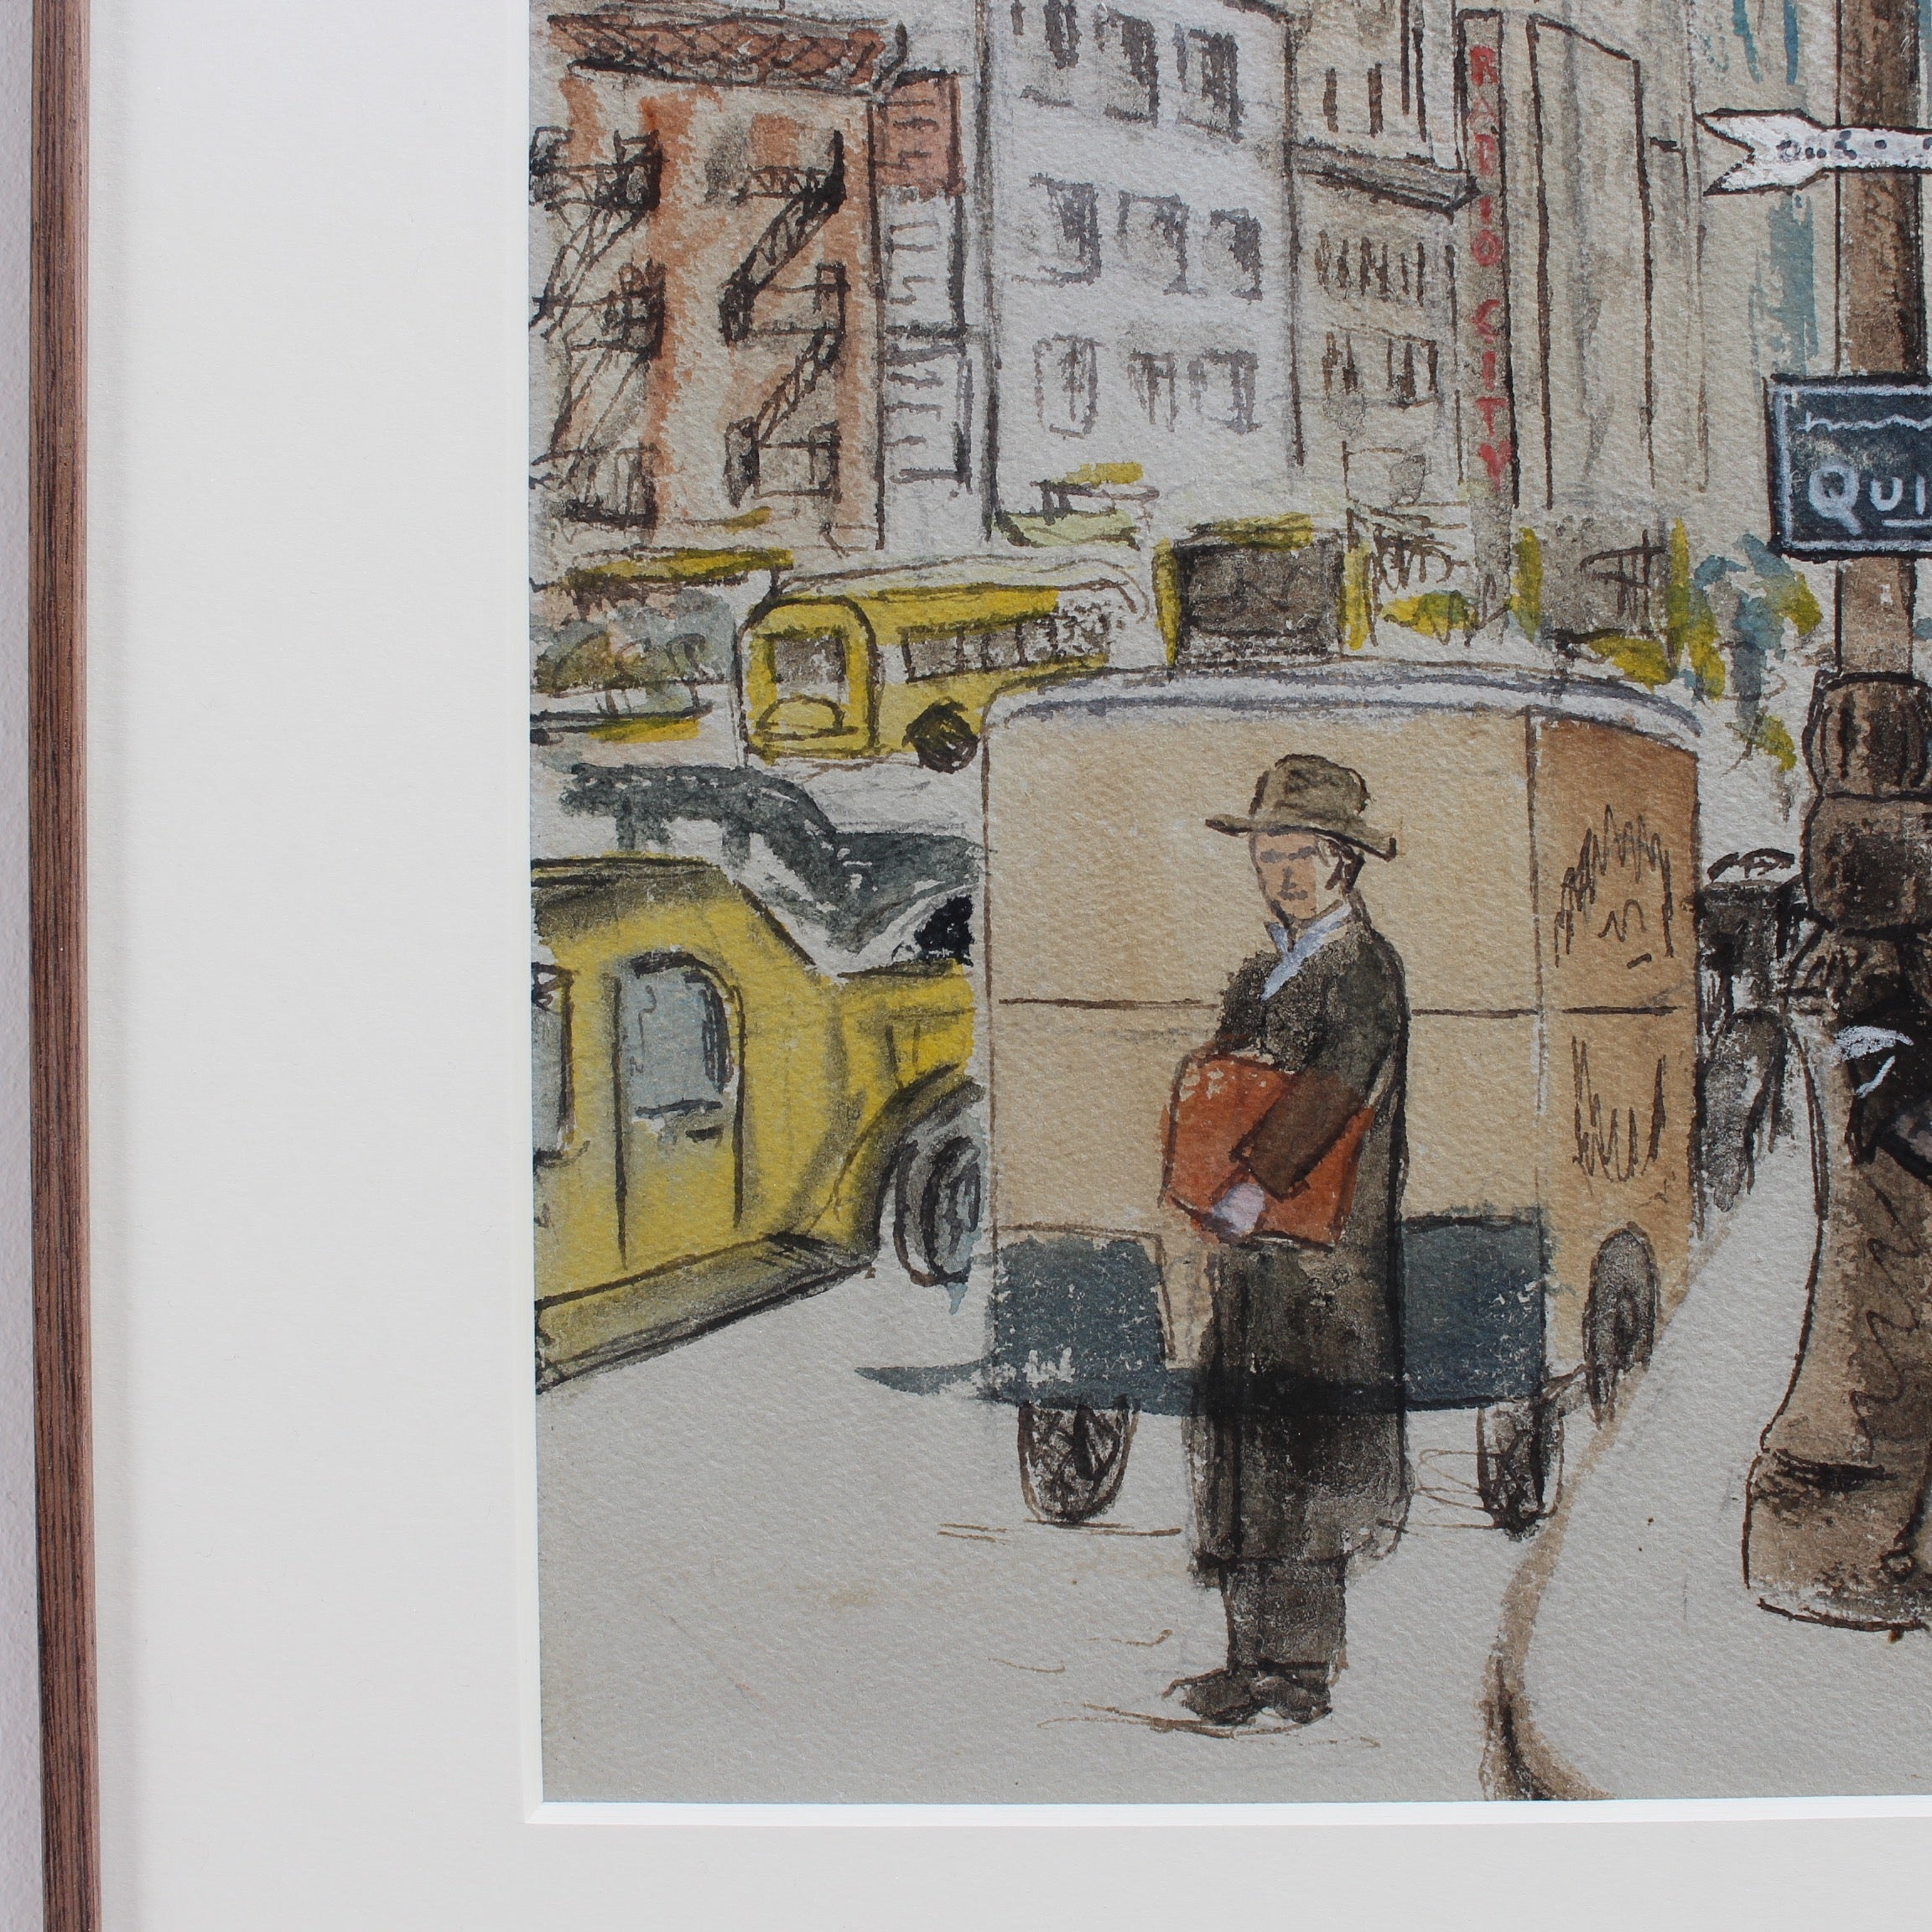 'New York West 55th Street' by Albert Jacquez (1945)